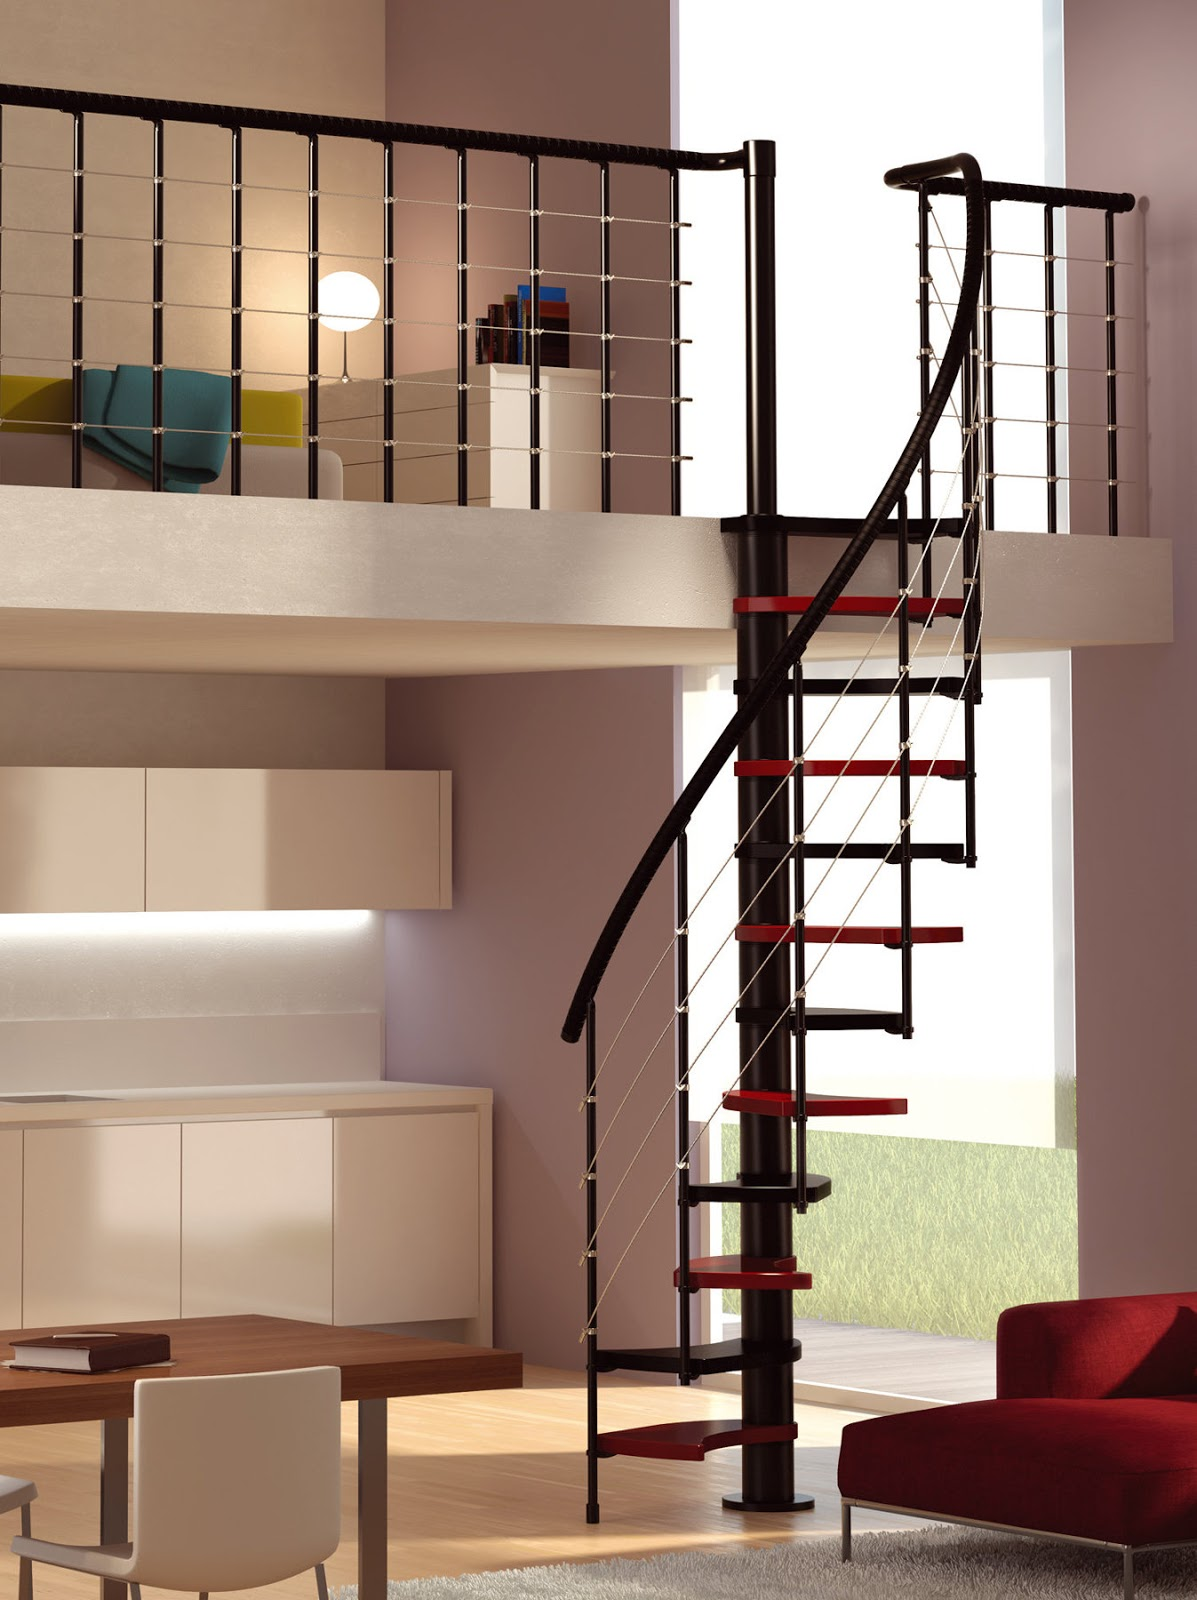 How to build a small spiral staircase - My Staircase Gallery